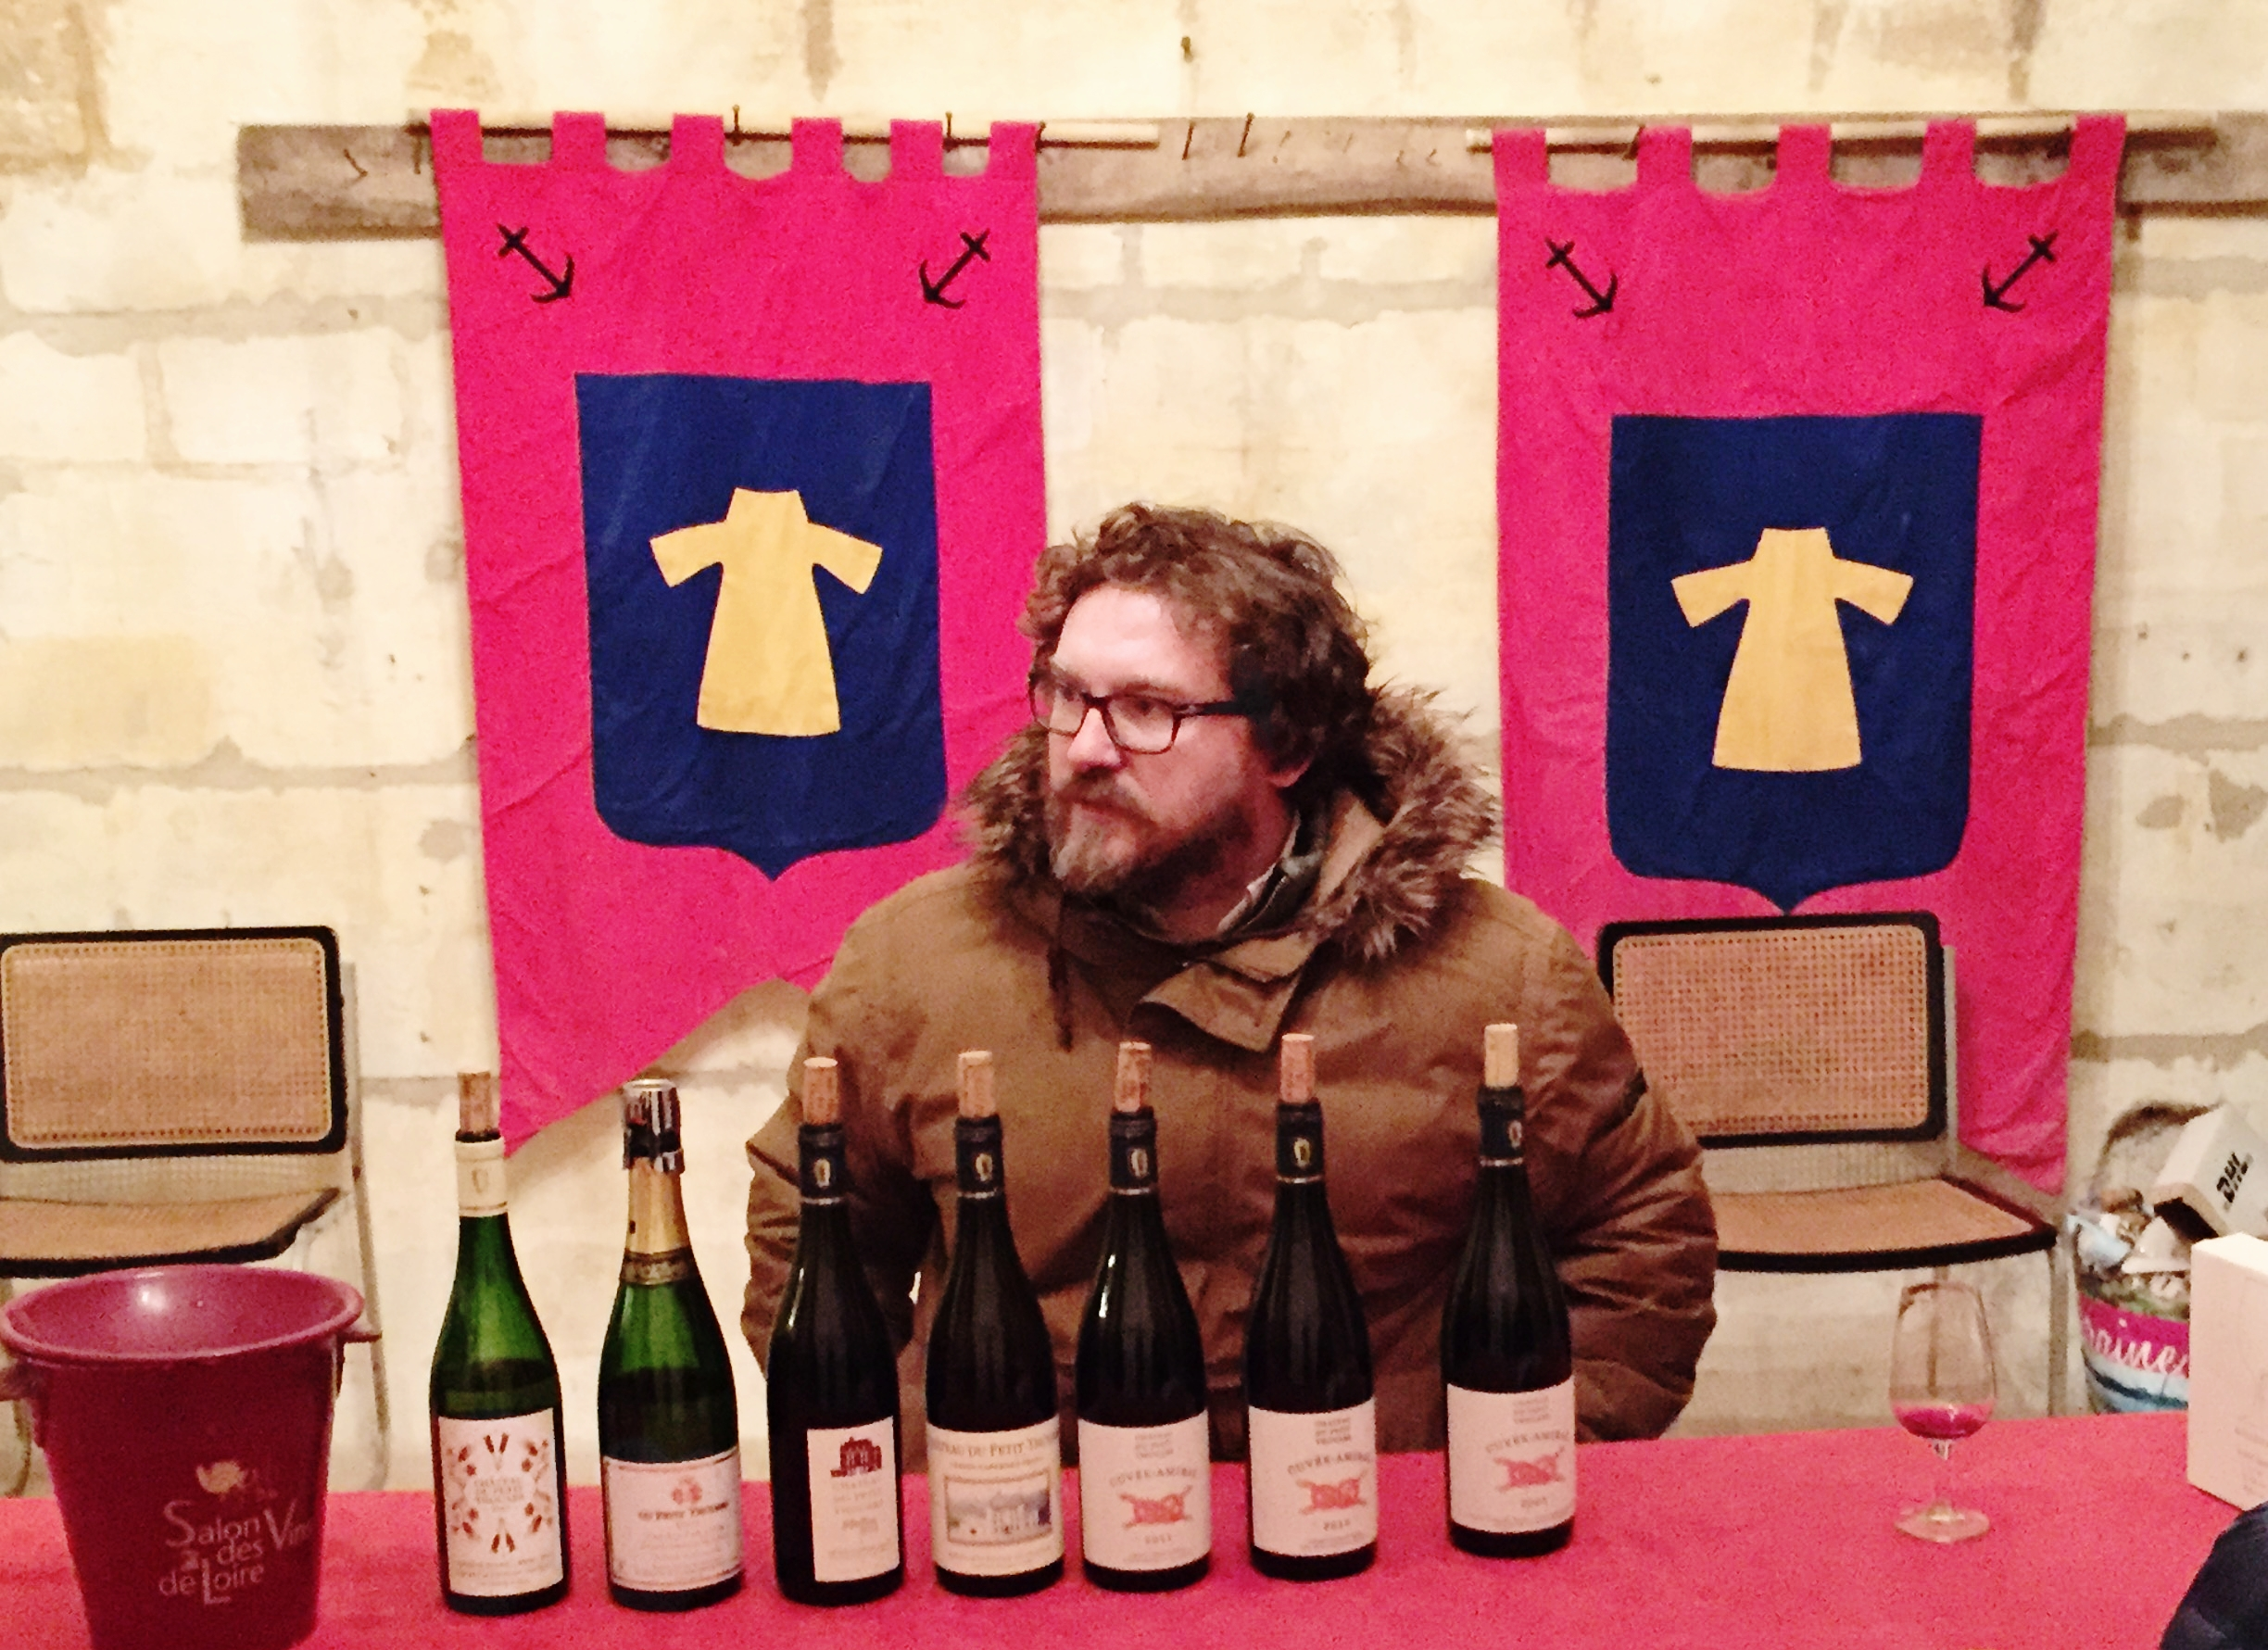 Sébastien pouring us his wines in front of flags with his family crest.